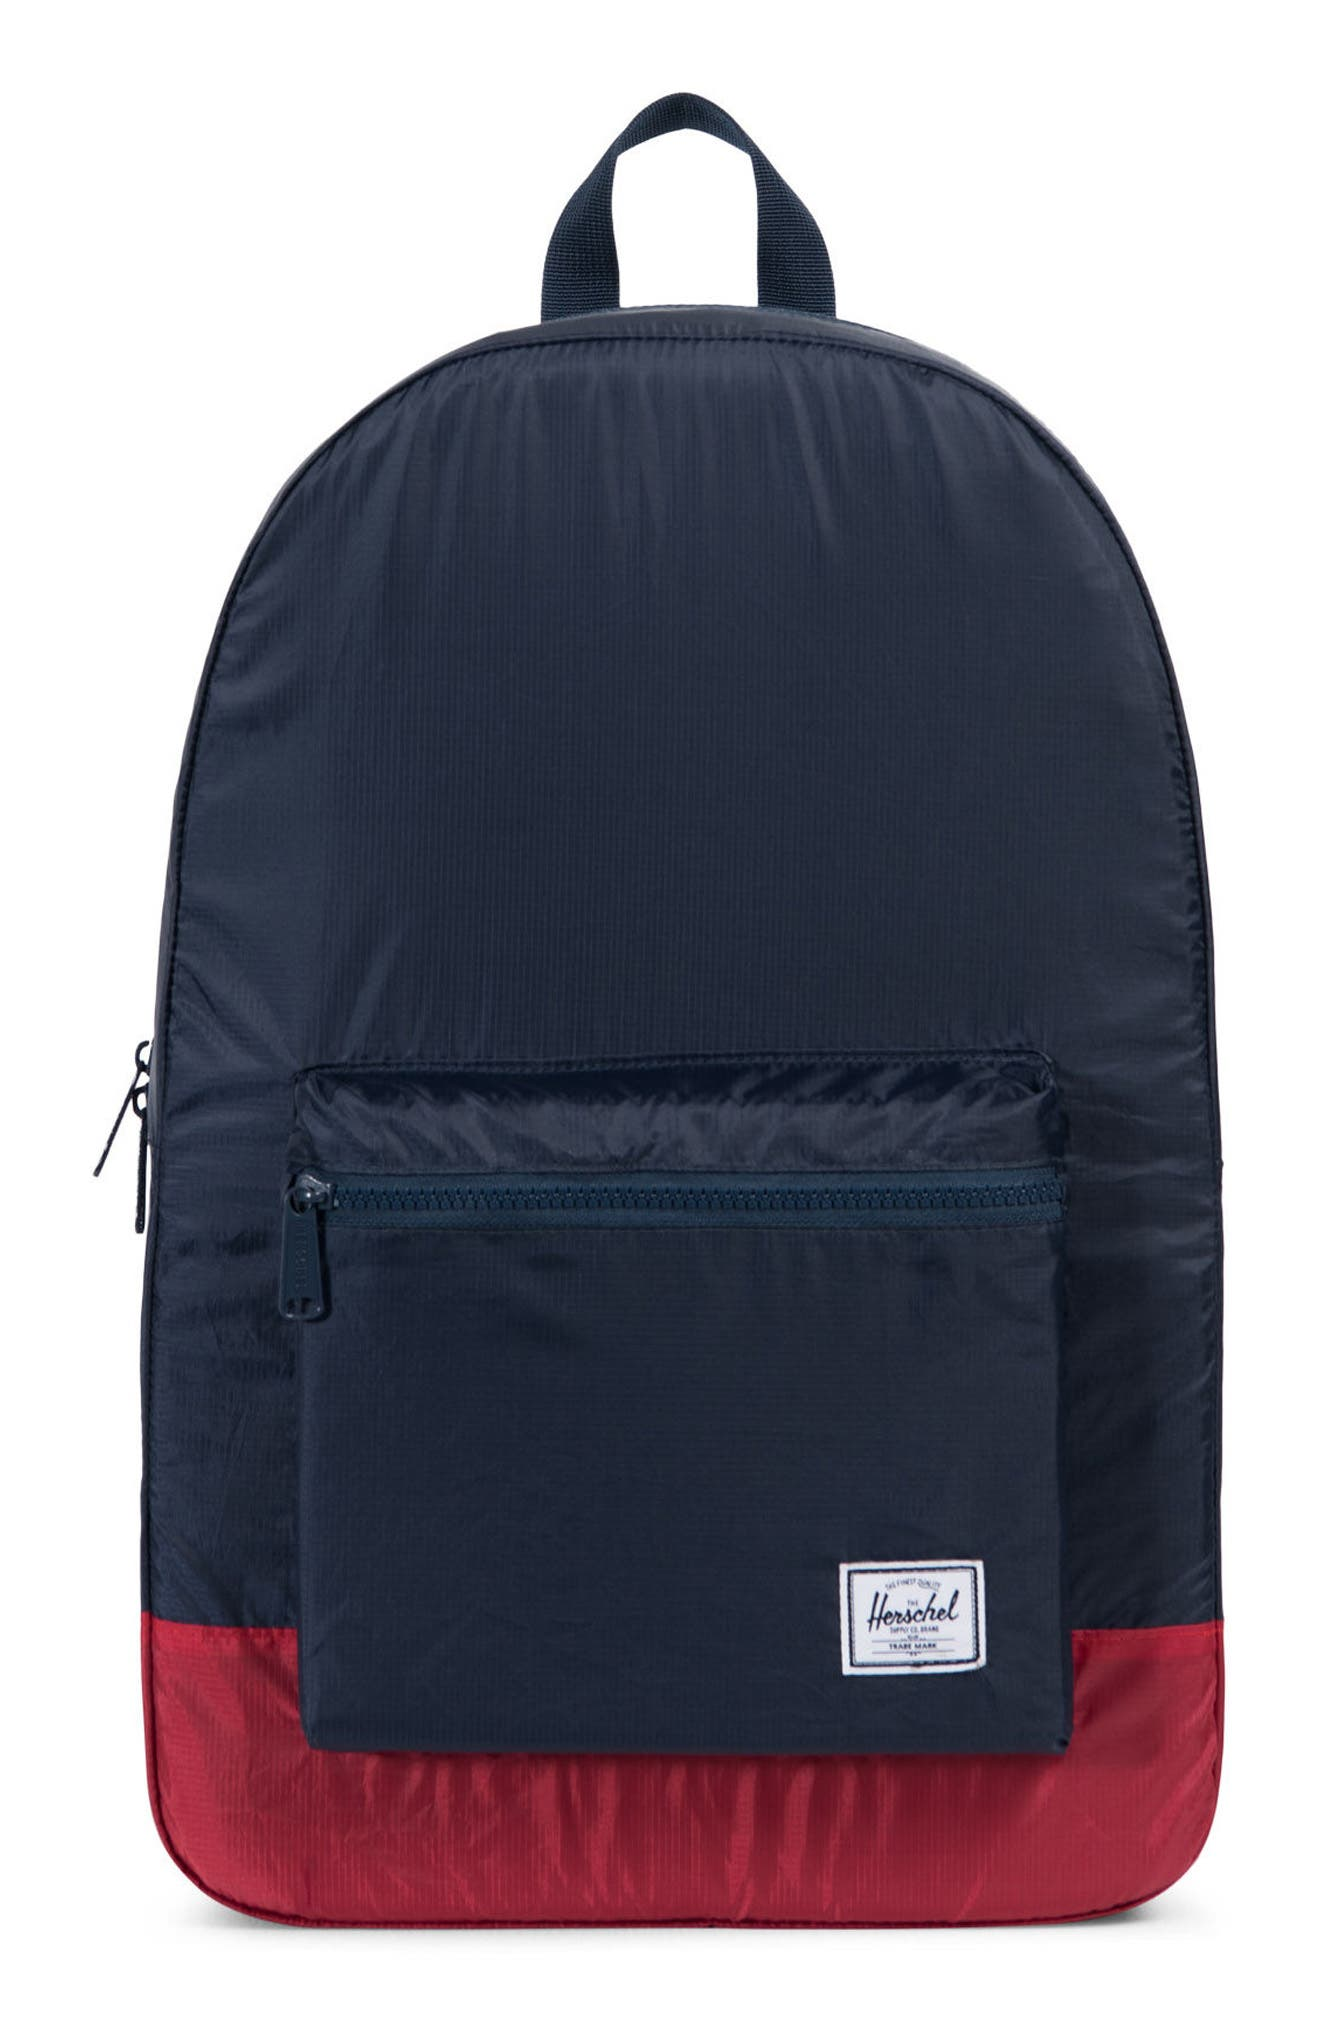 03987727f6bf Herschel Supply Co. Packable Daypack - Blue In Navy  Red